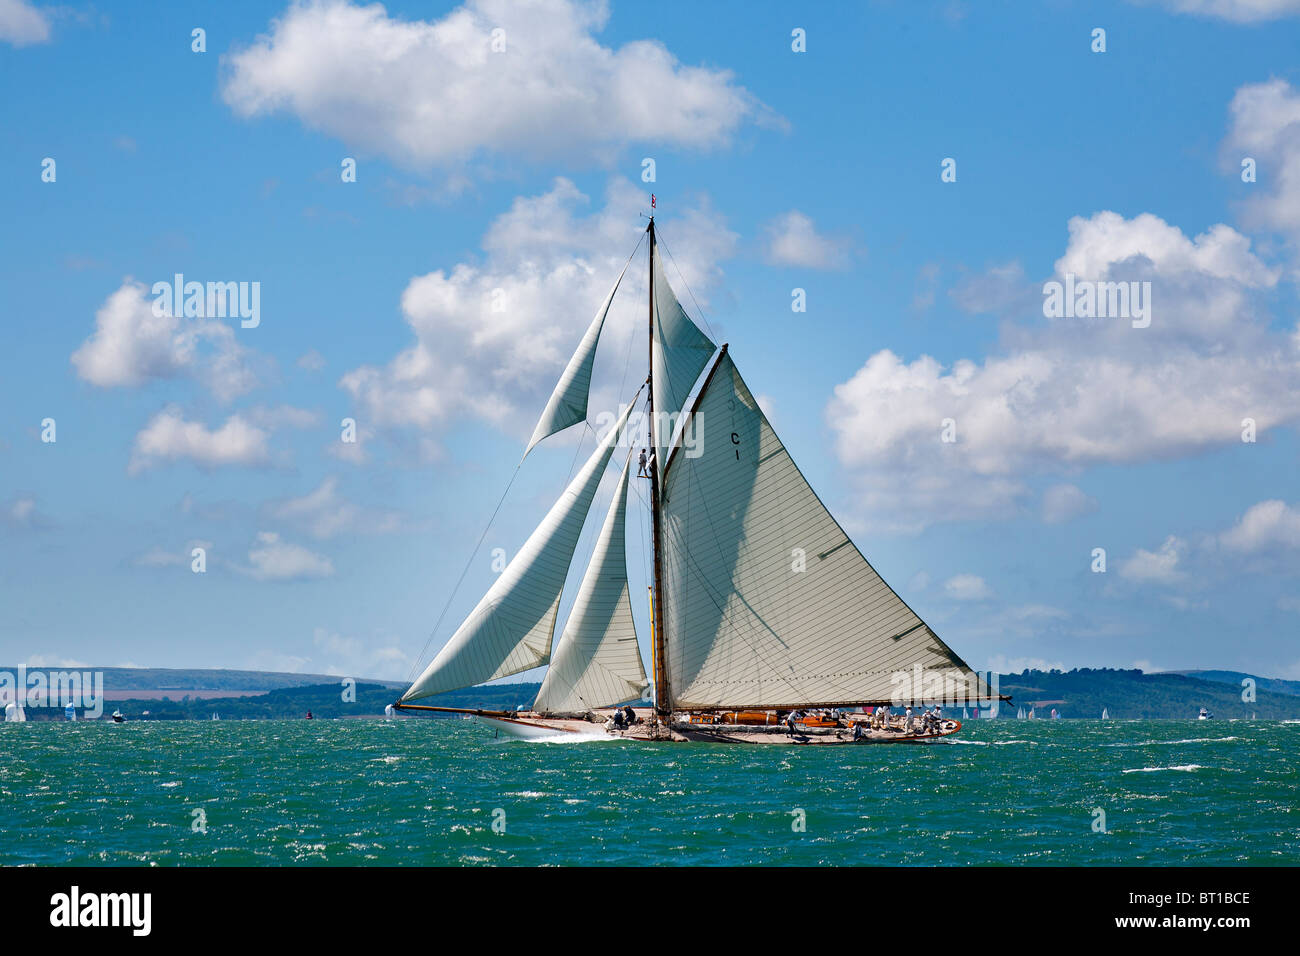 19-metre traditional gaff cutter Mariqita sailing yacht under full sail in the Solent sail number C1 built in 1911 - Stock Image